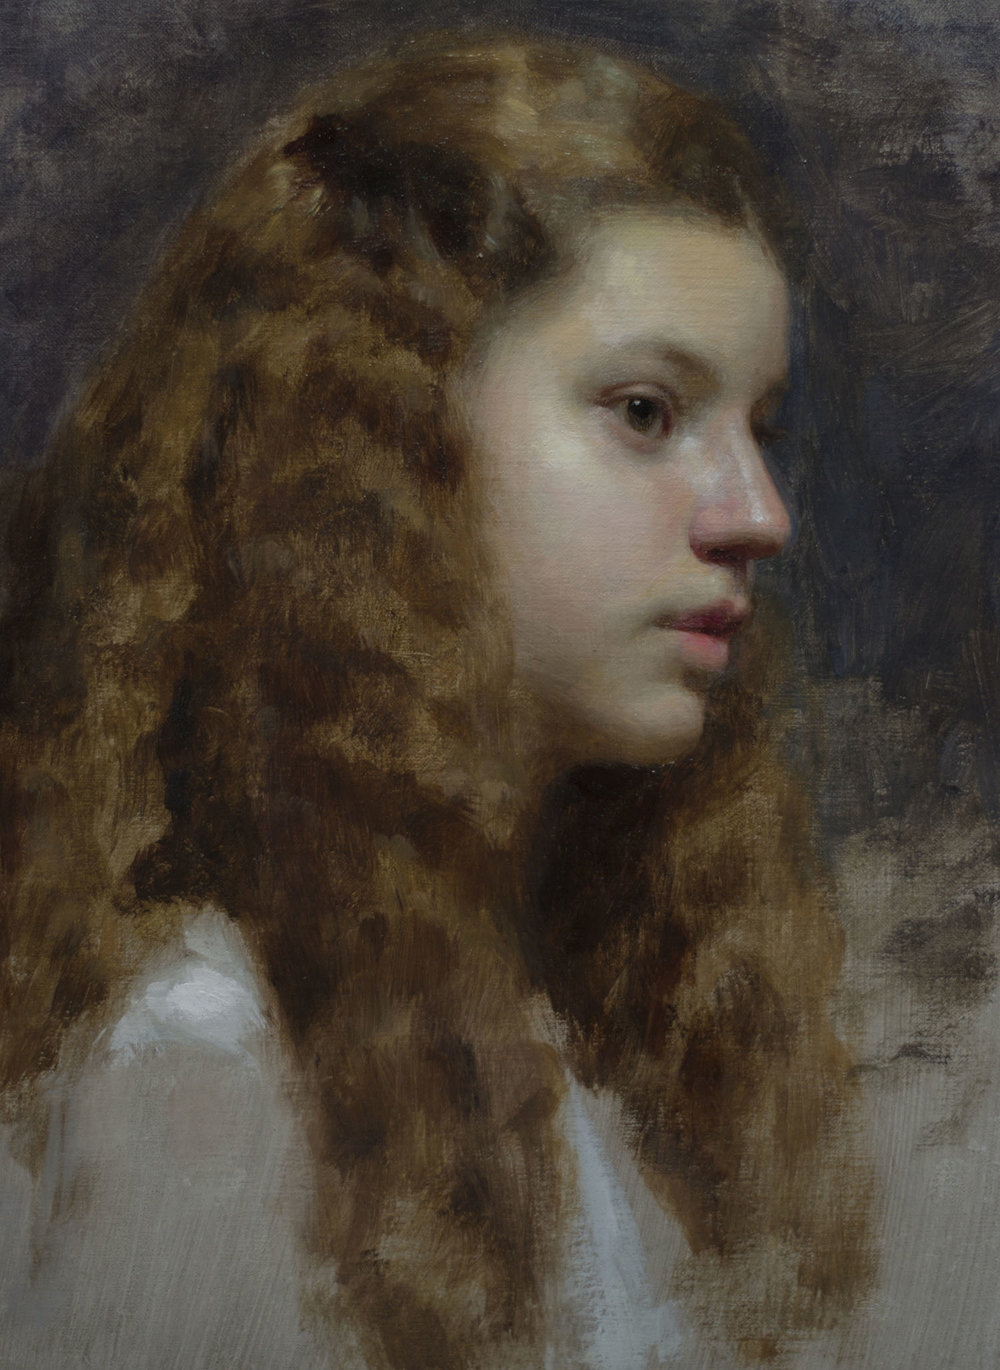 SOLD OUT - July 9-12, 2018 - Edinburgh Atelier of Fine Art, UK - 4-Day Portrait Drawing and Painting Workshop